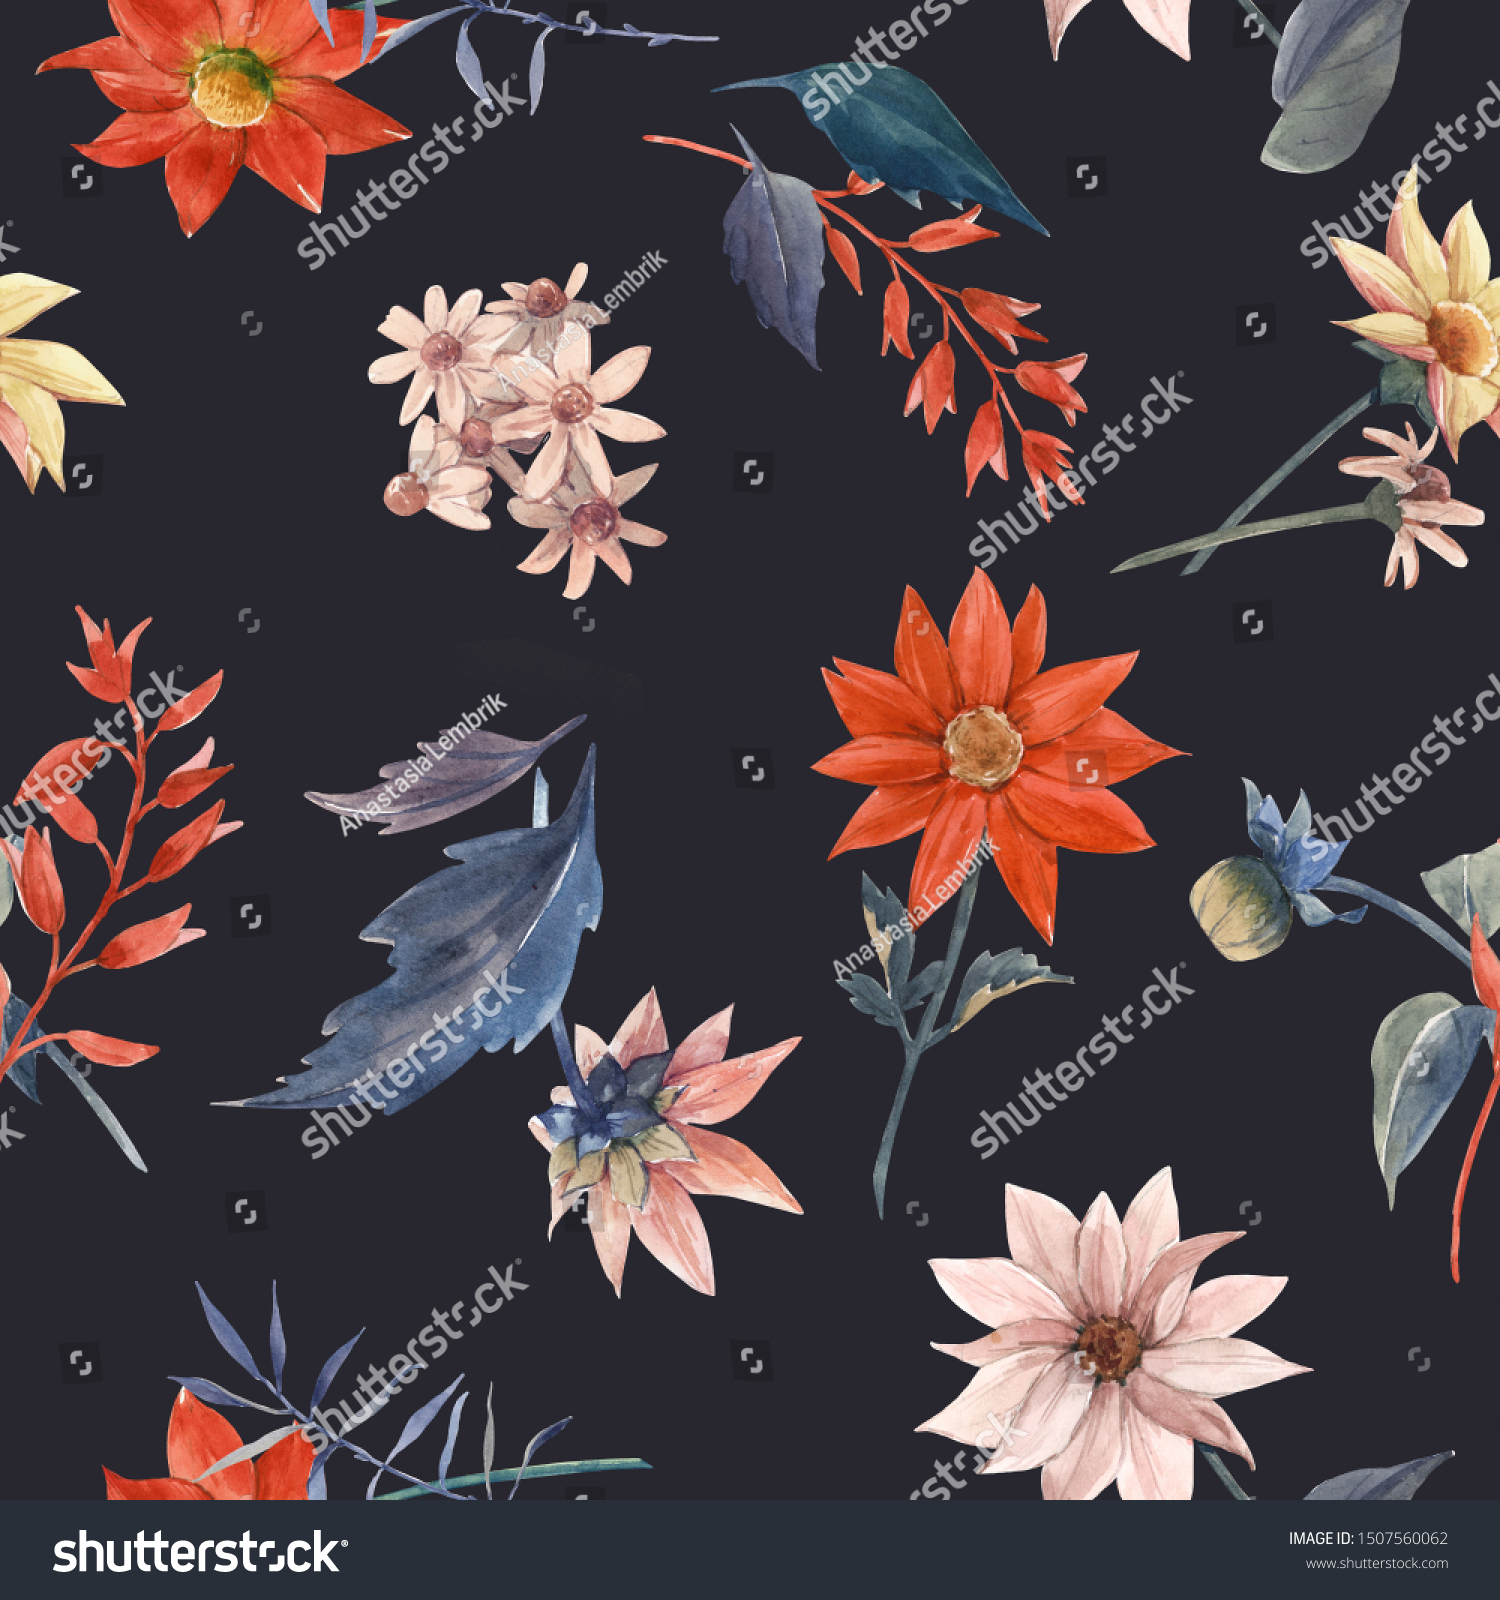 Watercolor Floral Wallpaper Red Dahlias Daisies Stock Illustration